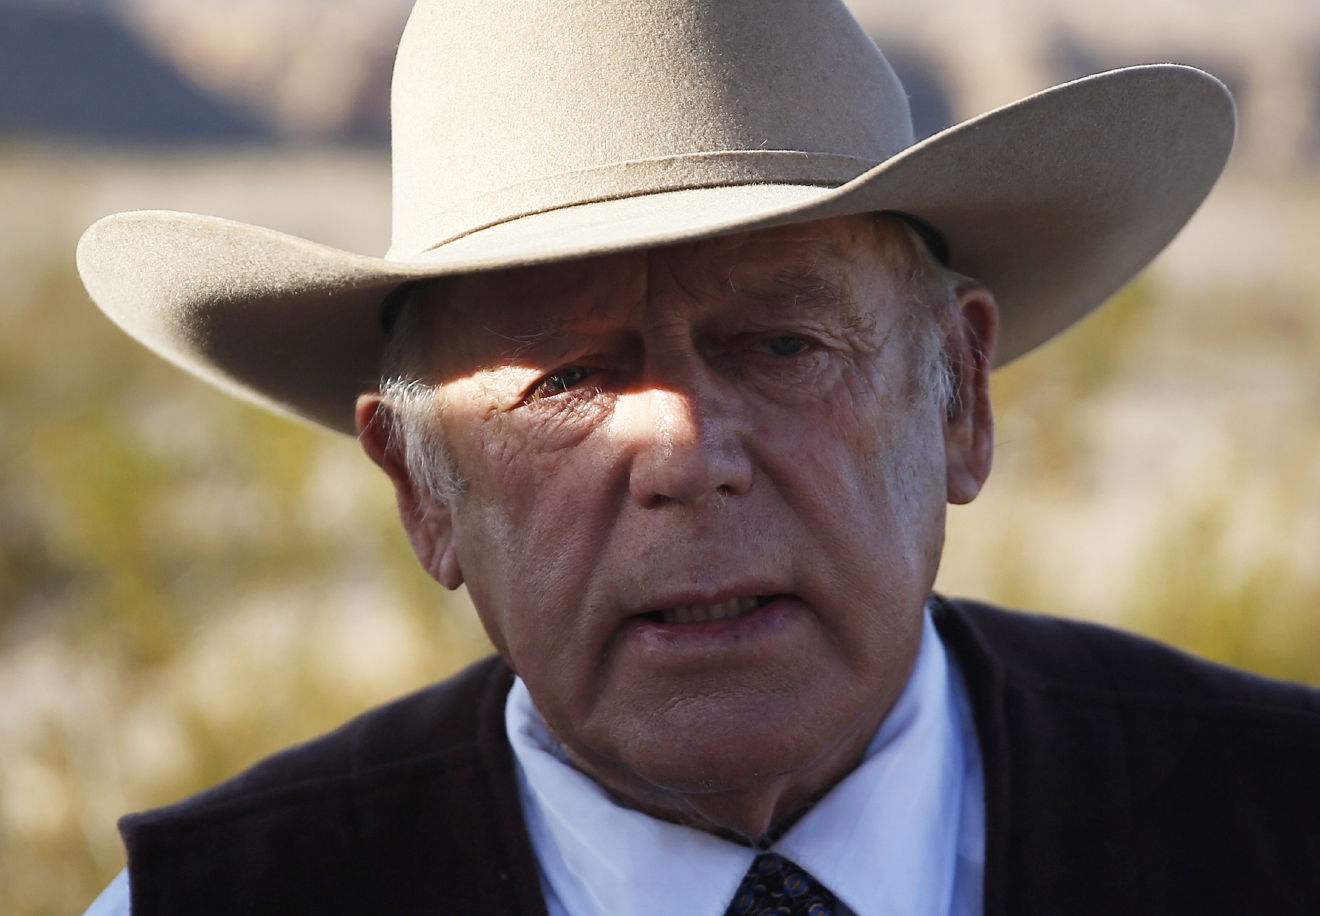 File - In this Jan. 27, 2016 file photo, rancher Cliven Bundy speaks to media while standing along the road near his ranch, in Bunkerville, Nev. Bundy, the renegade rancher at the center of a states versus federal rights fight, has made his first appearance in custody before a U.S. judge in Las Vegas. (AP Photo/John Locher, File)